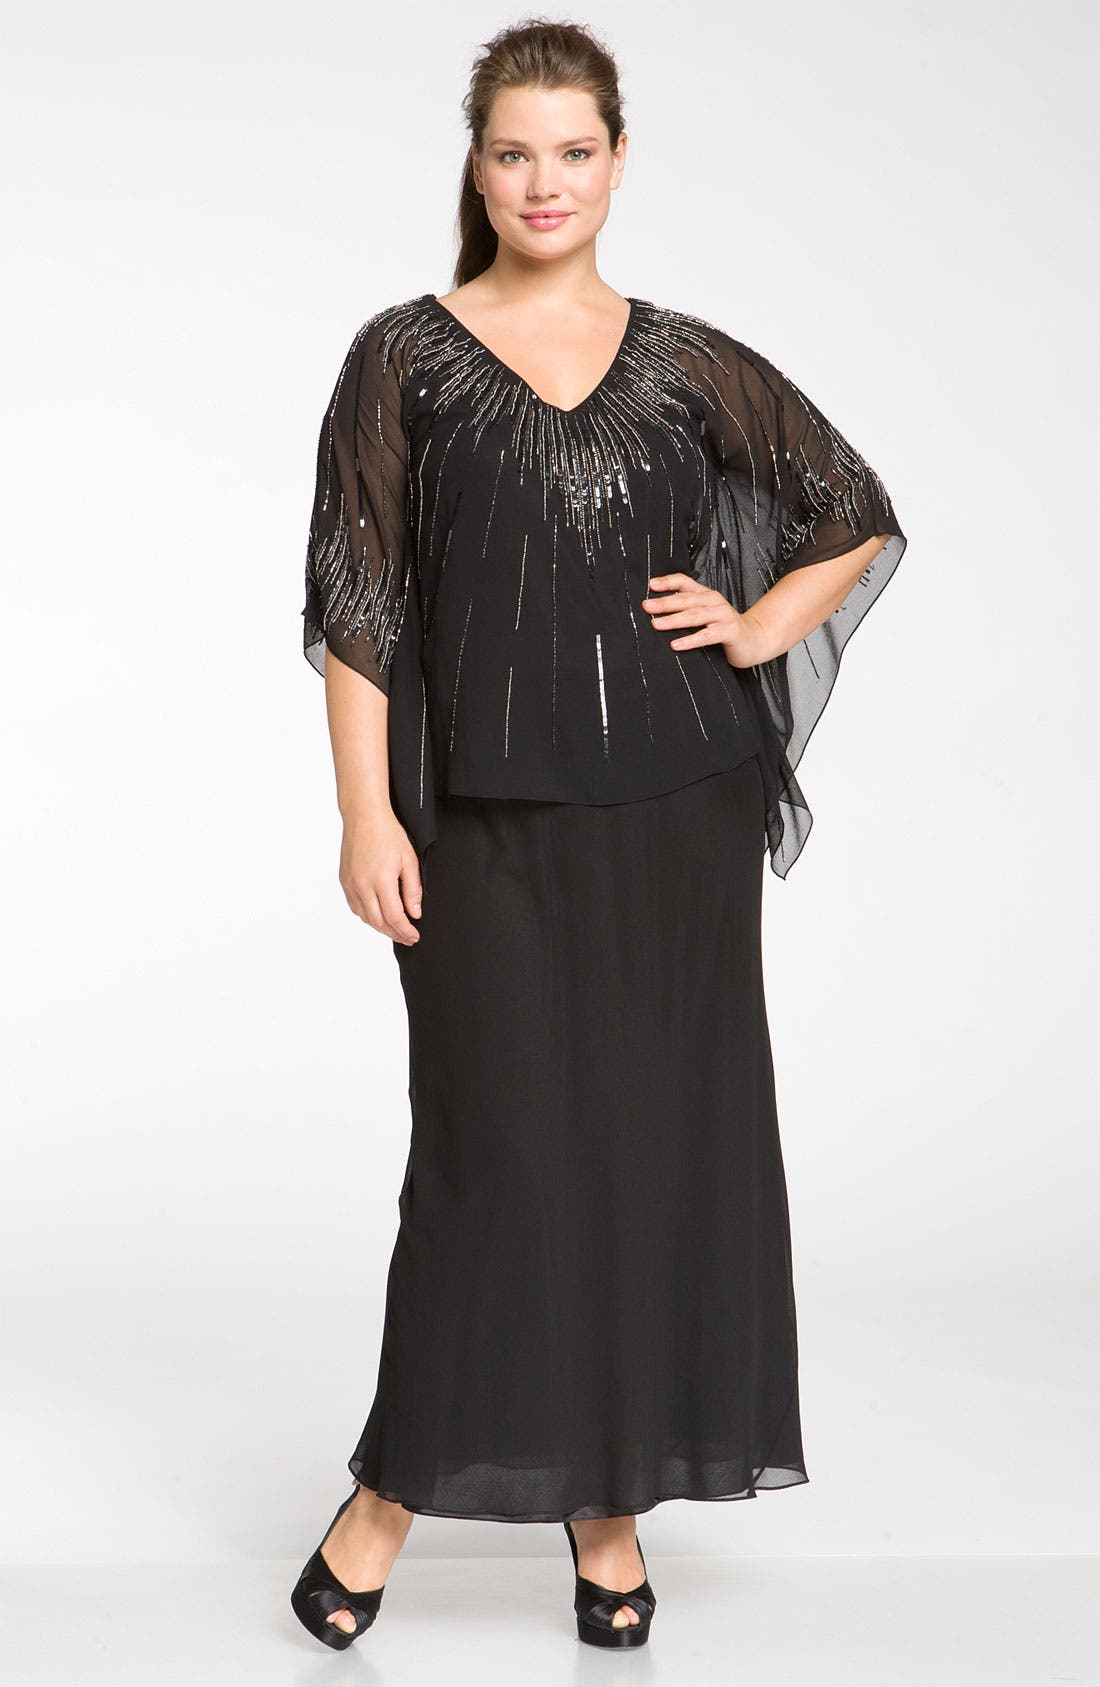 Alternate Image 1 Selected - J Kara Beaded Chiffon Butterfly Sleeve Dress (Plus)